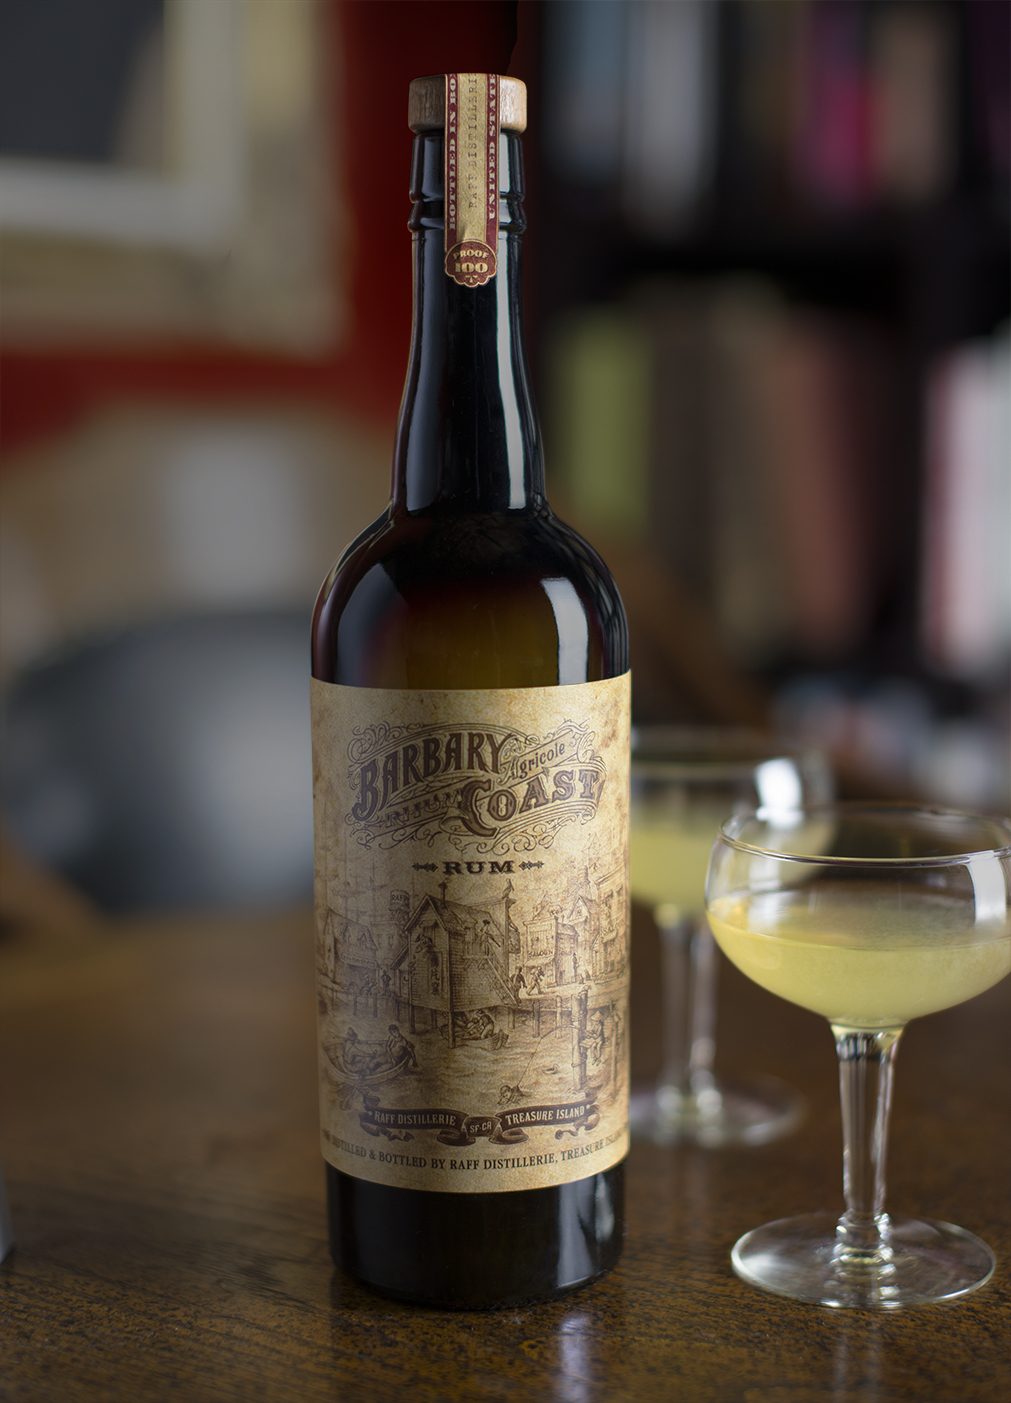 Auston Design Group - Raff Distillerie - Barbary Coast Rum